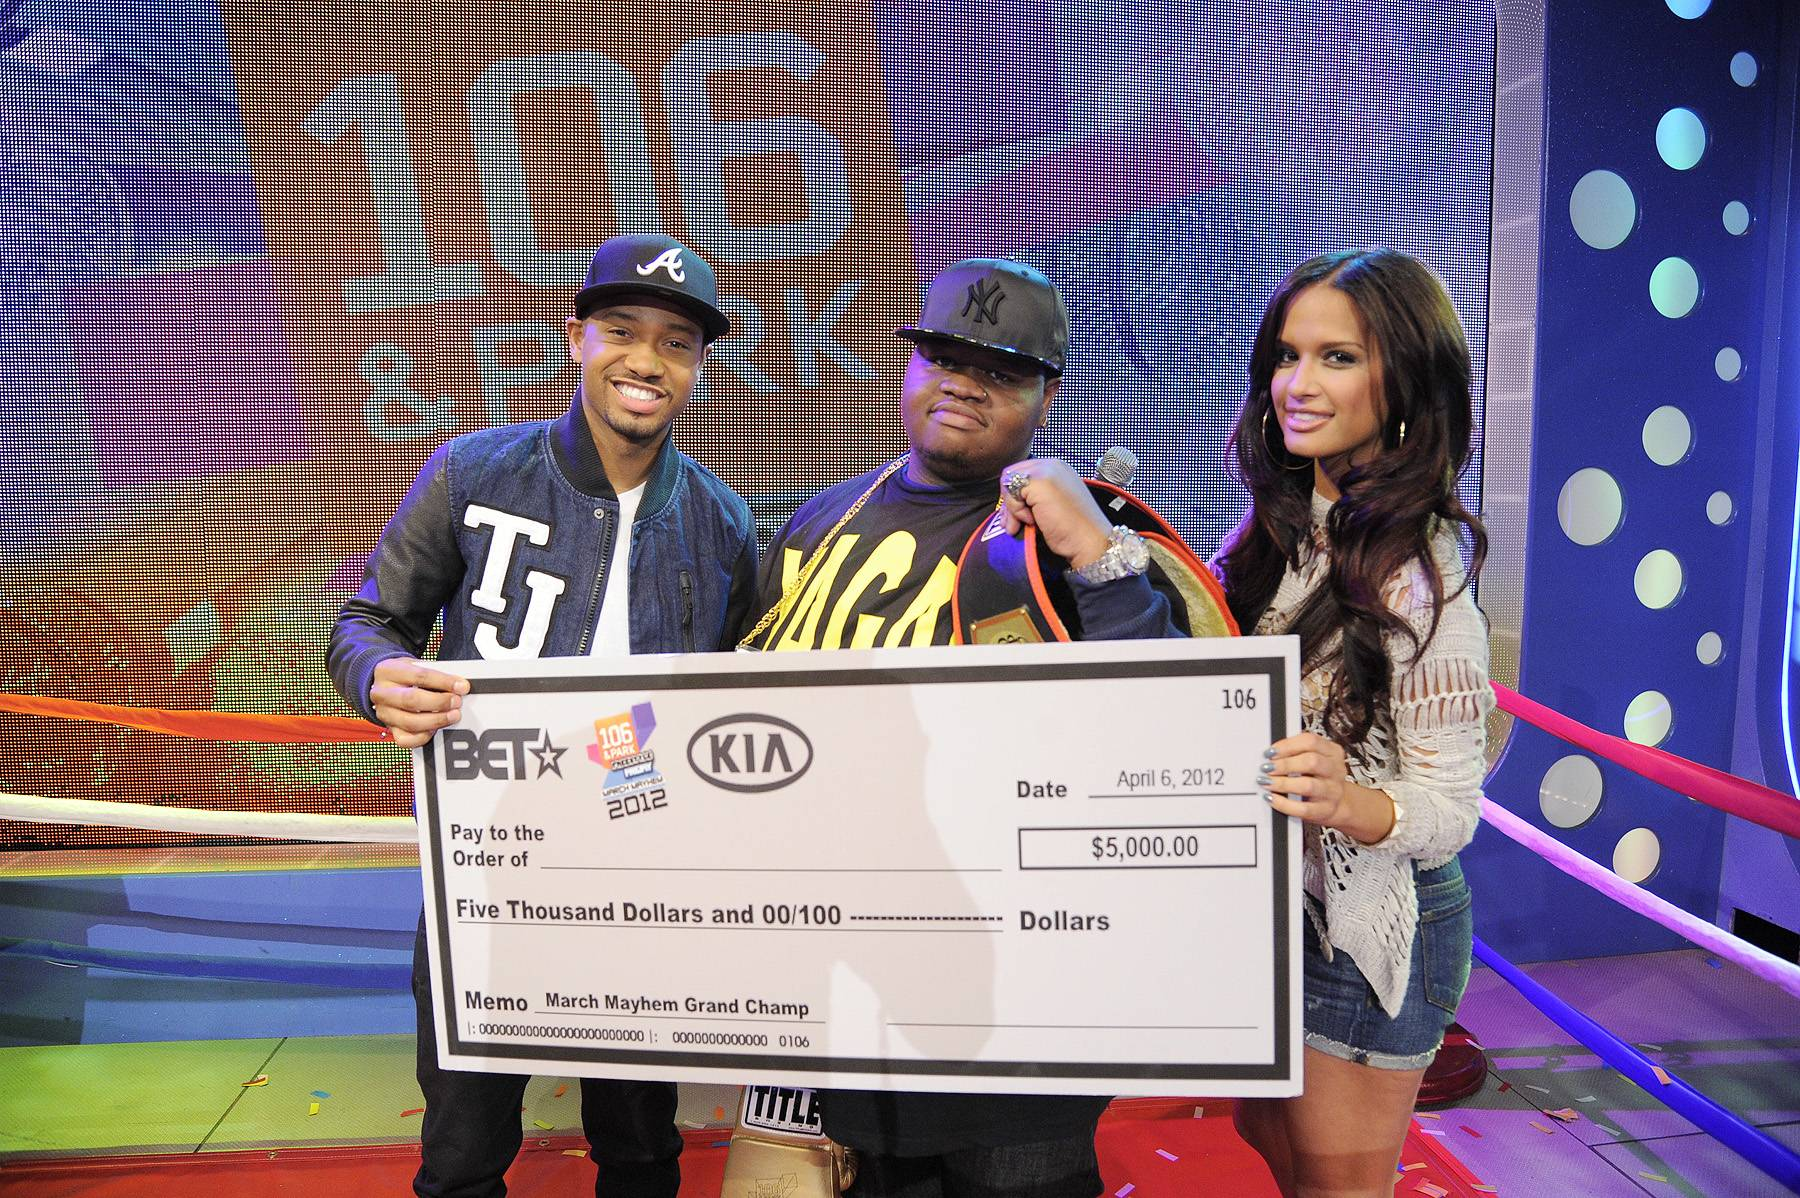 Hard Work Pays Off - Freestyle Friday champion Relly with $5,000 check from KIA at 106 & Park, April 6, 2012. (photo: John Ricard / BET)